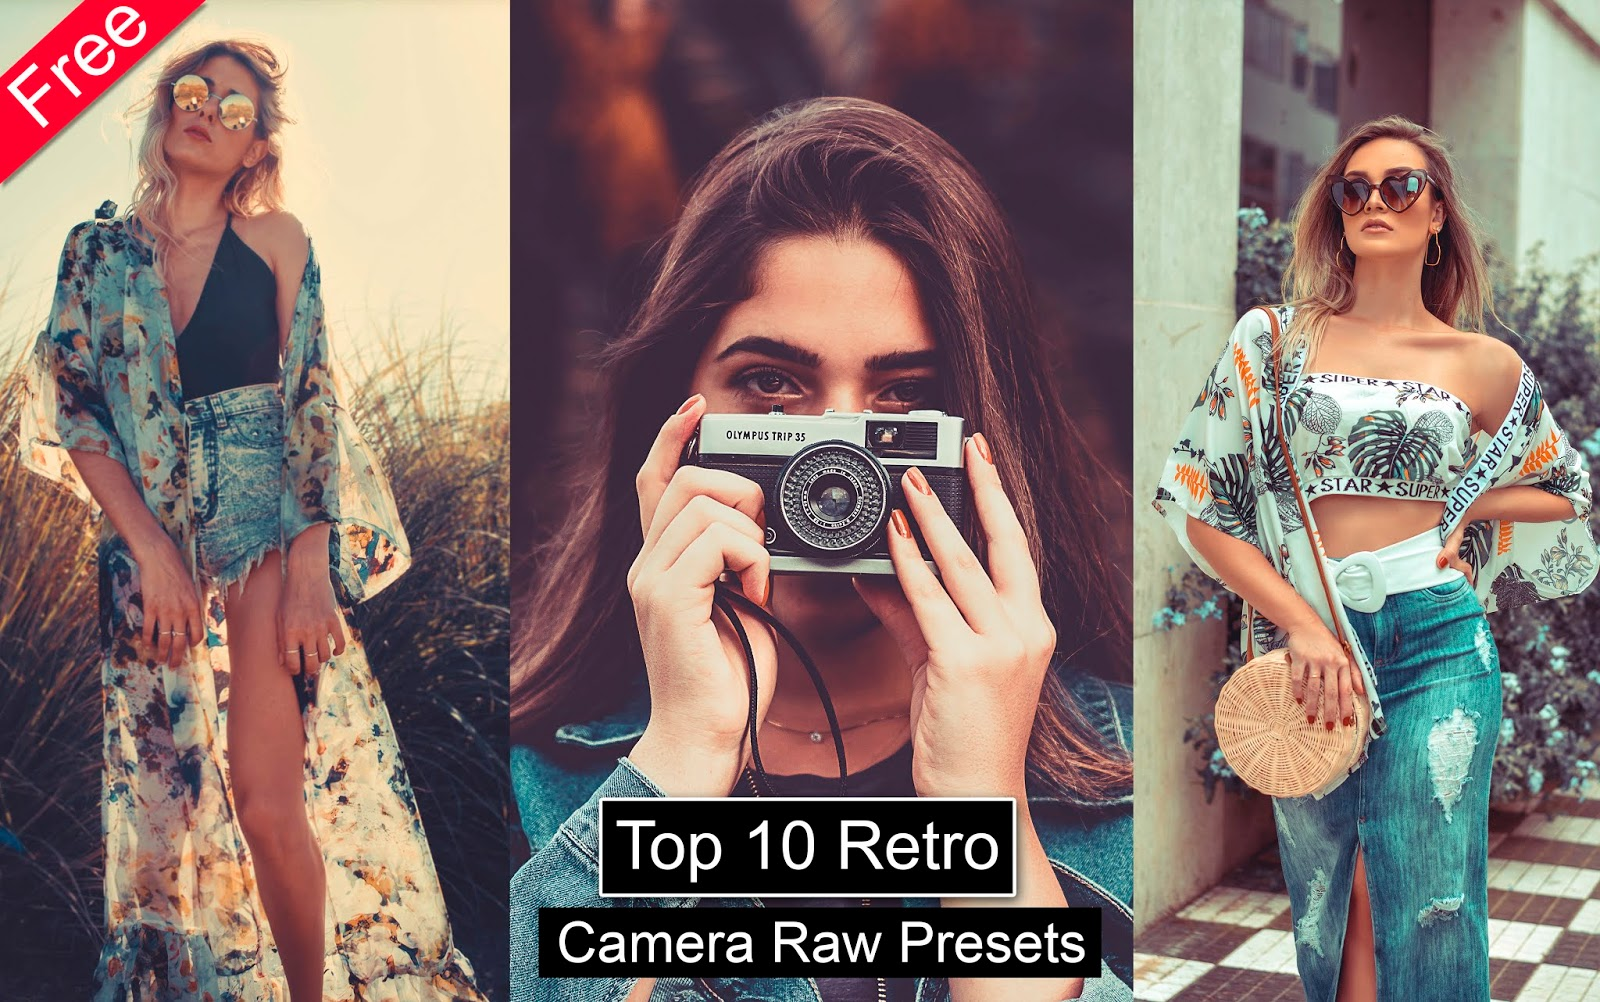 Download Top 10 Retro Camera Raw Presets for Free   Top 10 Camera Raw Presets of 2019